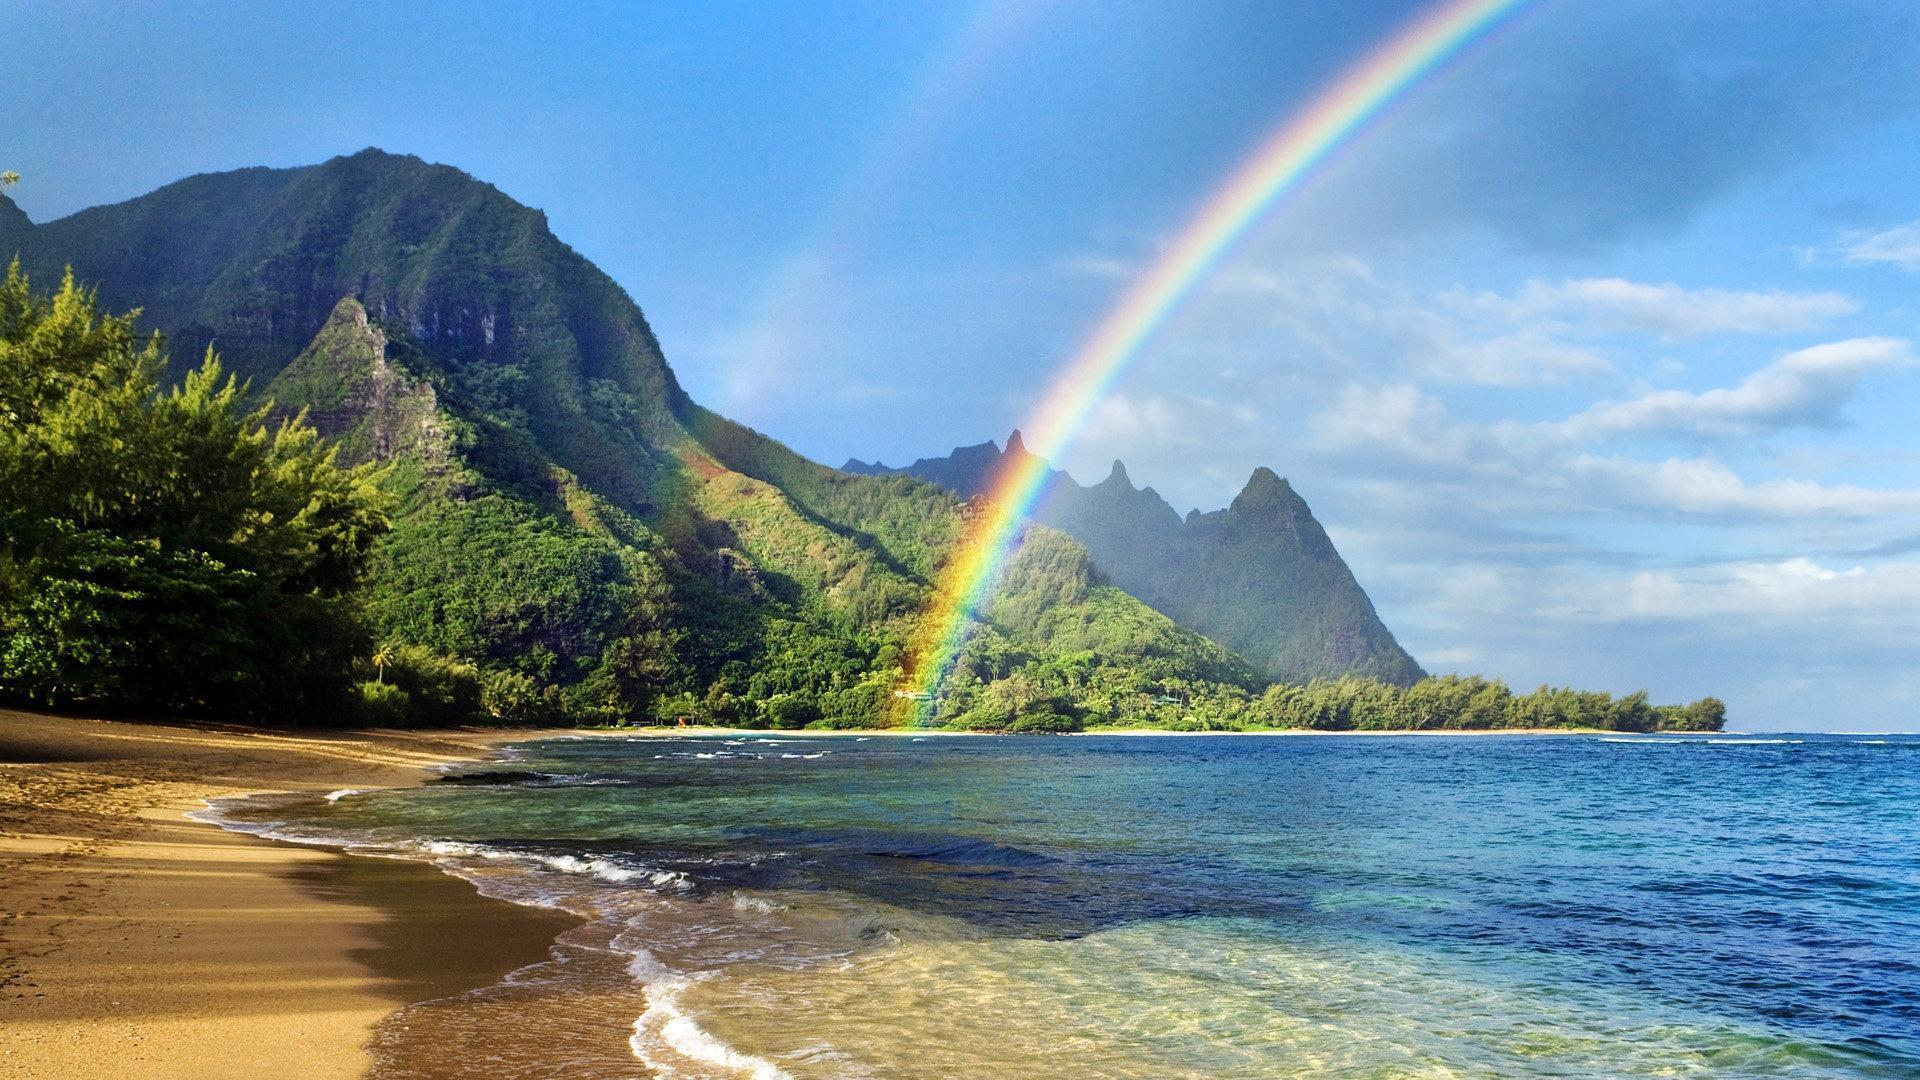 Glorious Rainbow On Hawaiian Beach Wallpapers Hd Backgrounds 45891